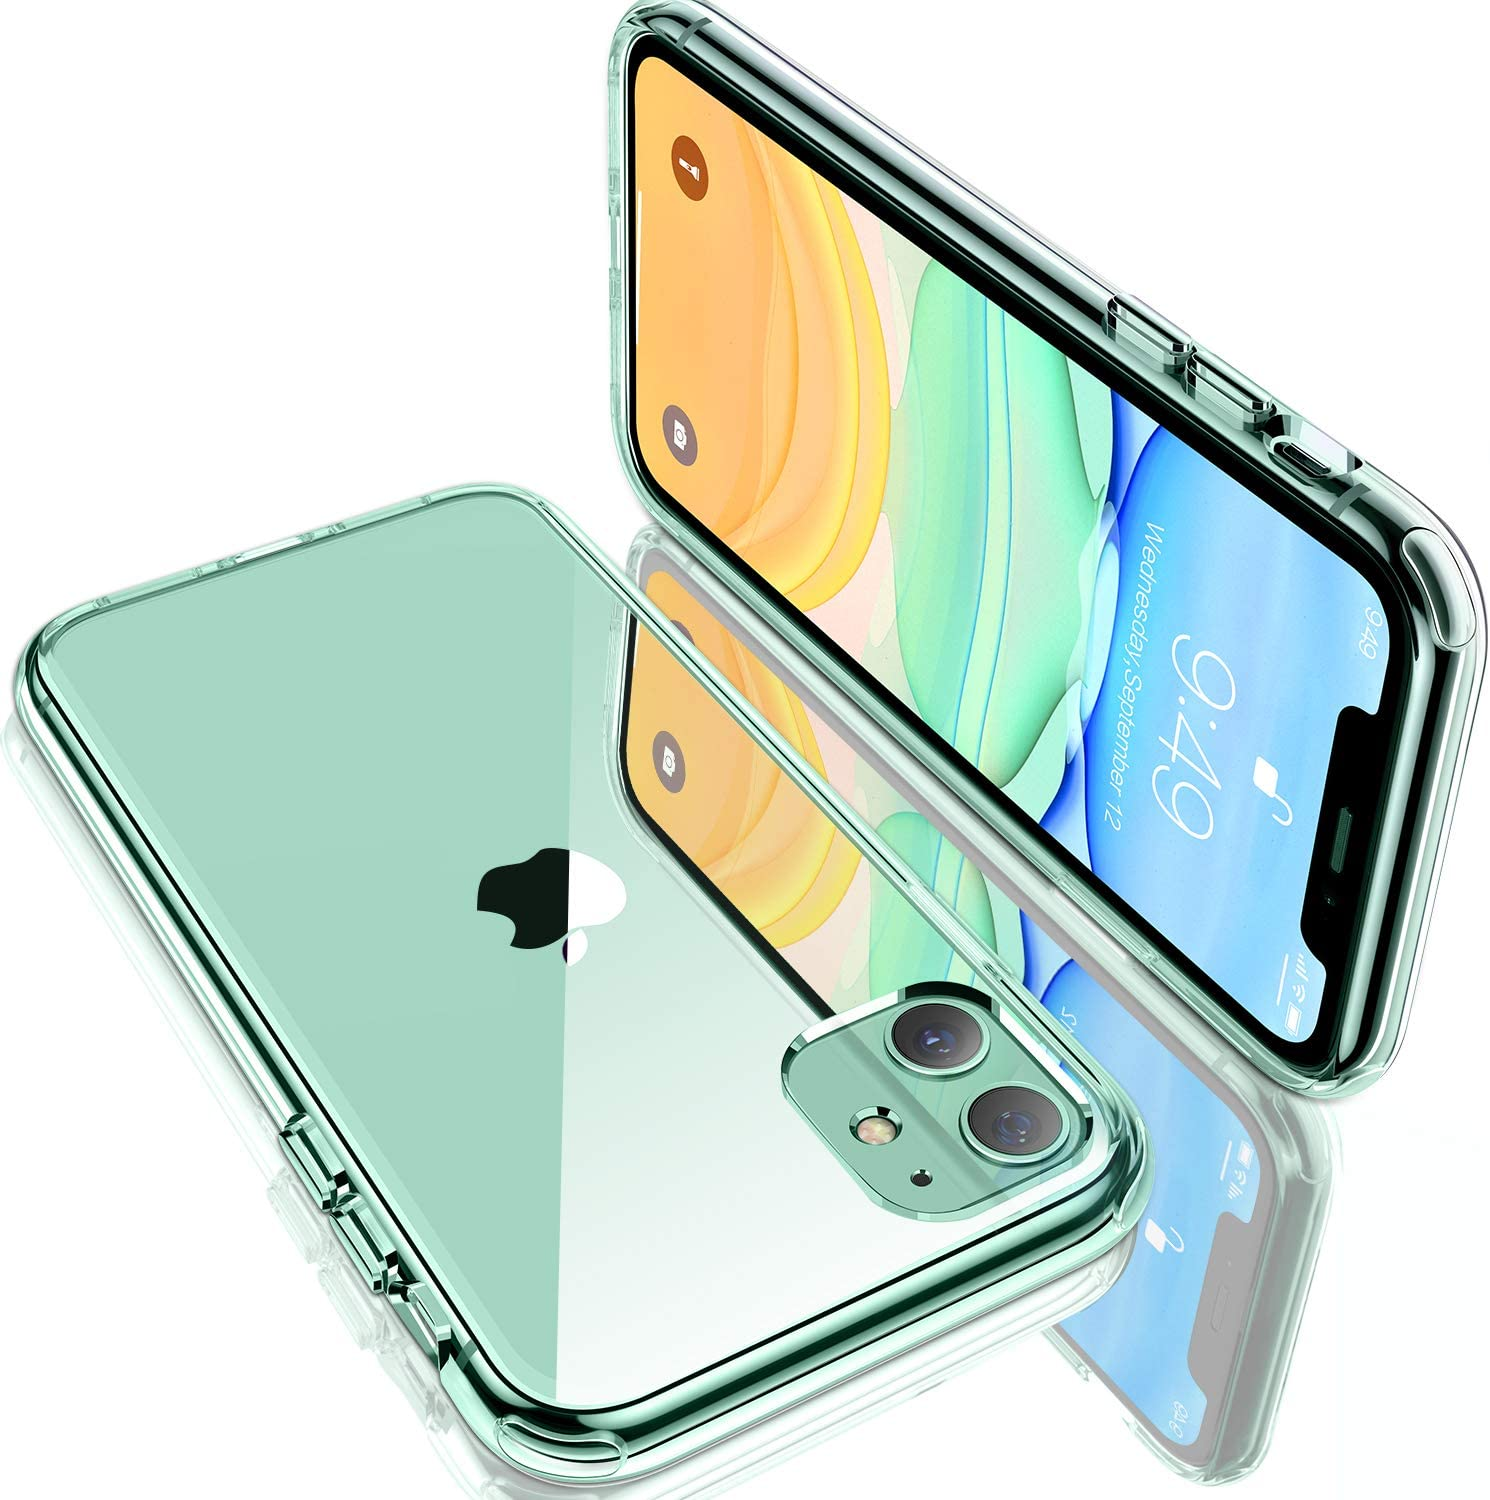 """Humixx Shockproof Clear iPhone 11 Case,[6 FT Military Grade Drop Protection] [11X Anti-Yellowing] Protective Transparent Clear Case for Apple iPhone 11 6.1"""" with Shockproof Soft Bumper, Clear"""